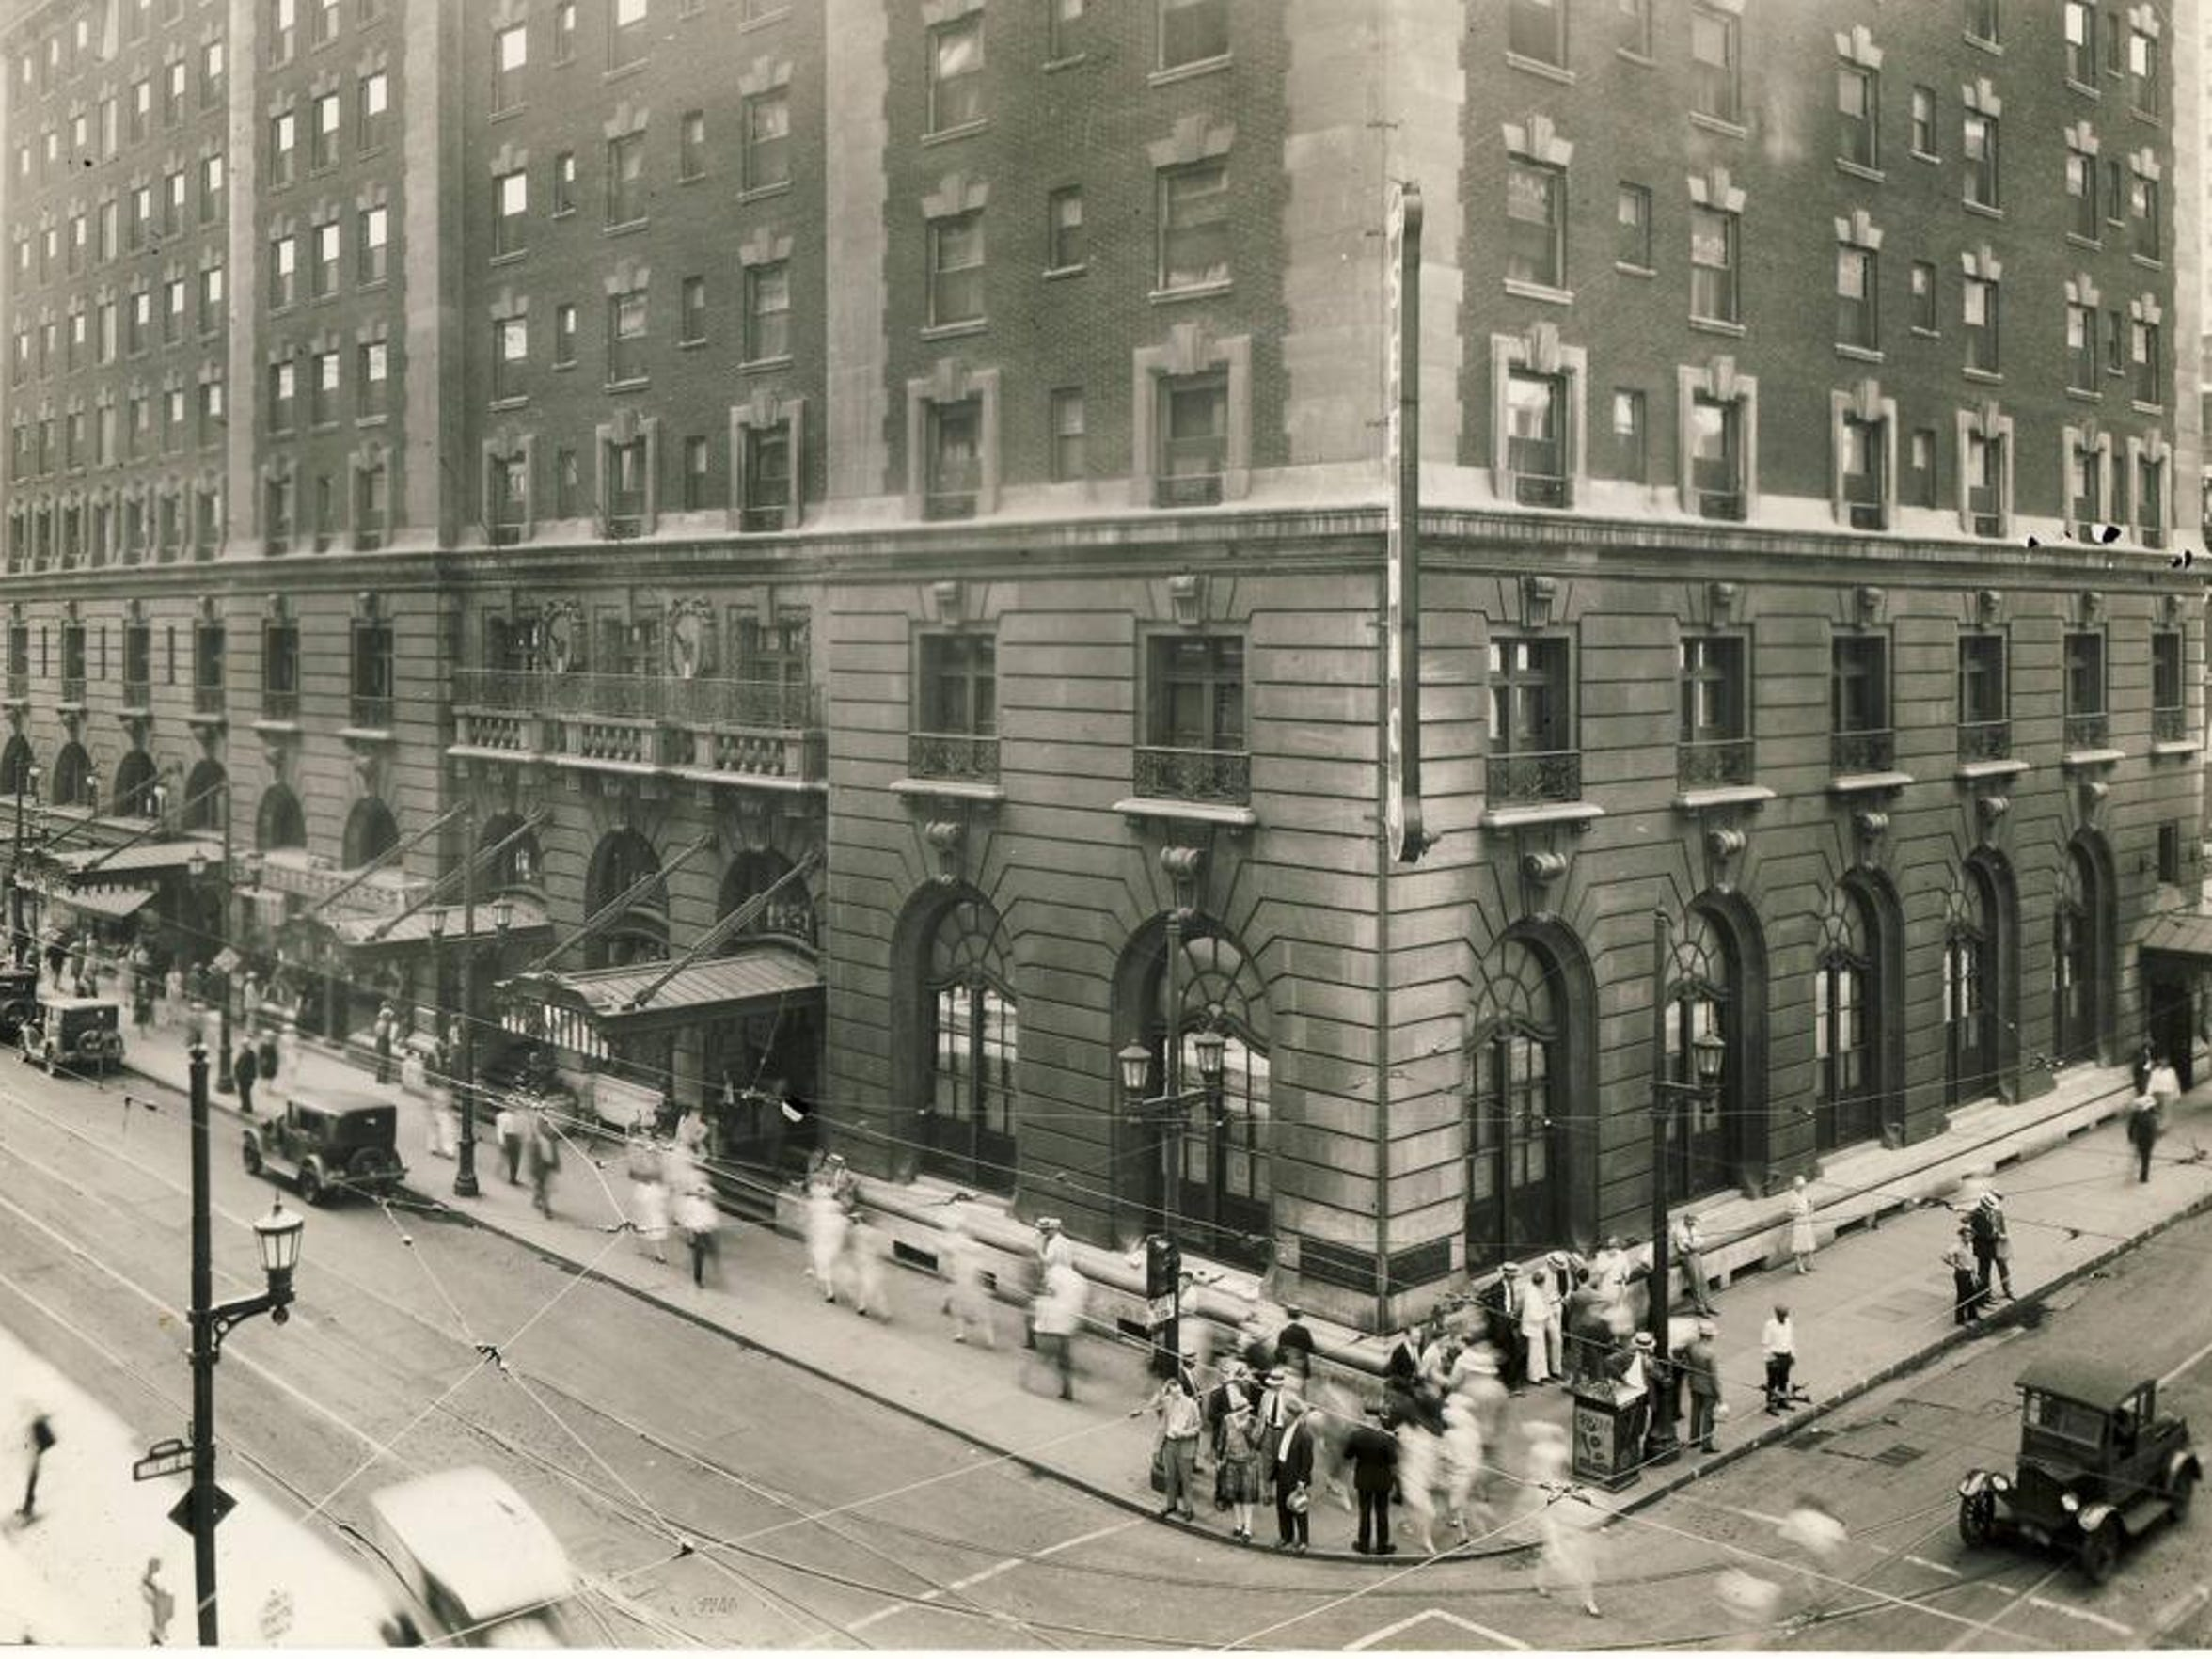 The Seelbach Hotel, built by brothers Louis and Otto Seelbach from Germany, is shown in 1928 at 4th and Walnut streets, now Muhammad Ali Blvd.